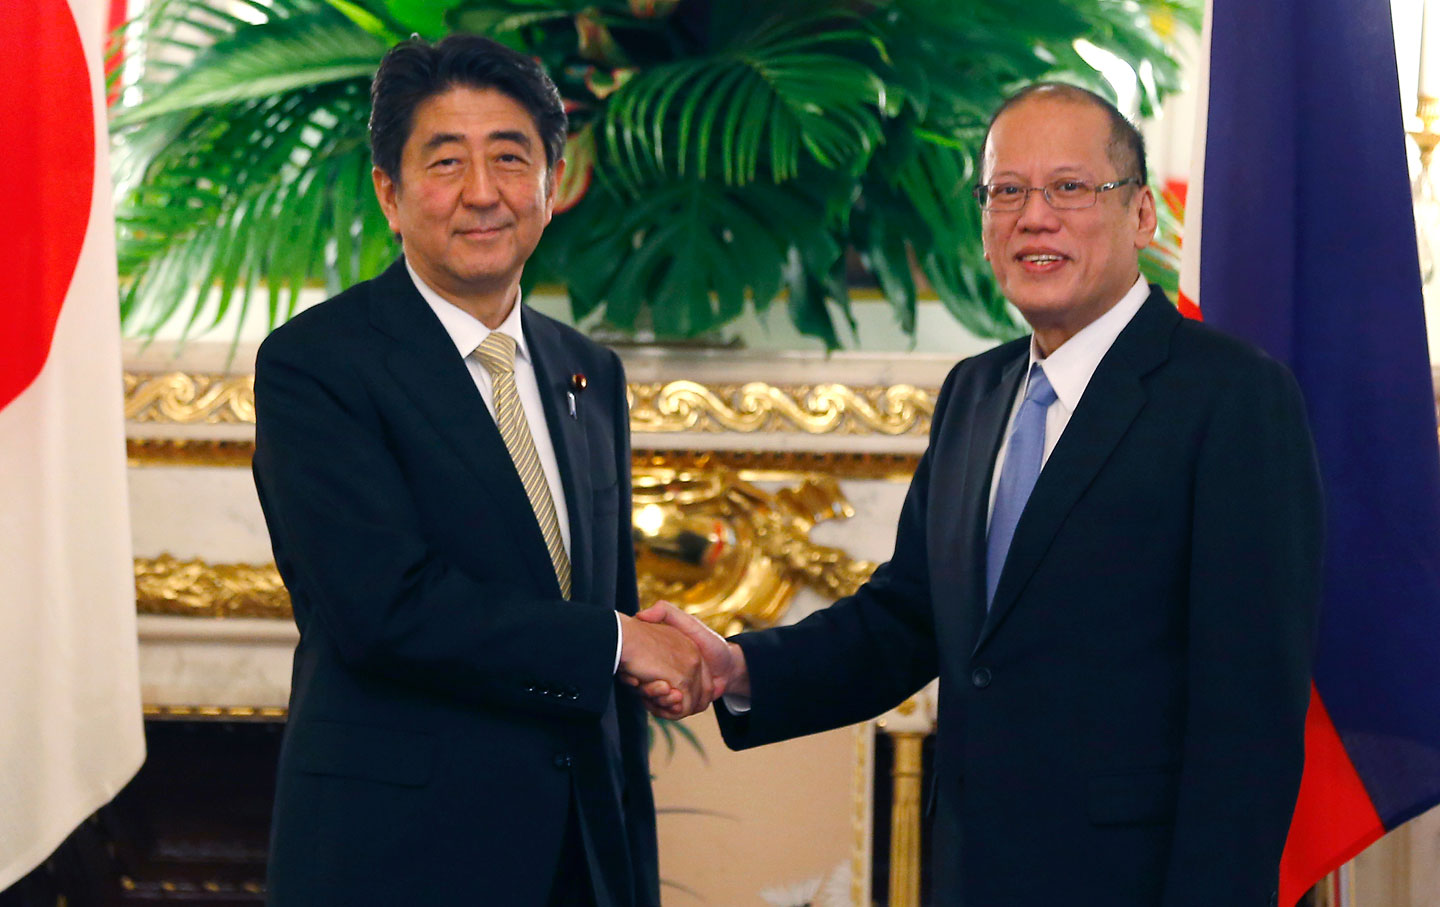 What the class politics of world war ii mean for tensions in asia philippine president benigno aquino iii right shakes hands with japanese prime minister shinzo abe prior to their meeting at akasaka palace state guest publicscrutiny Images